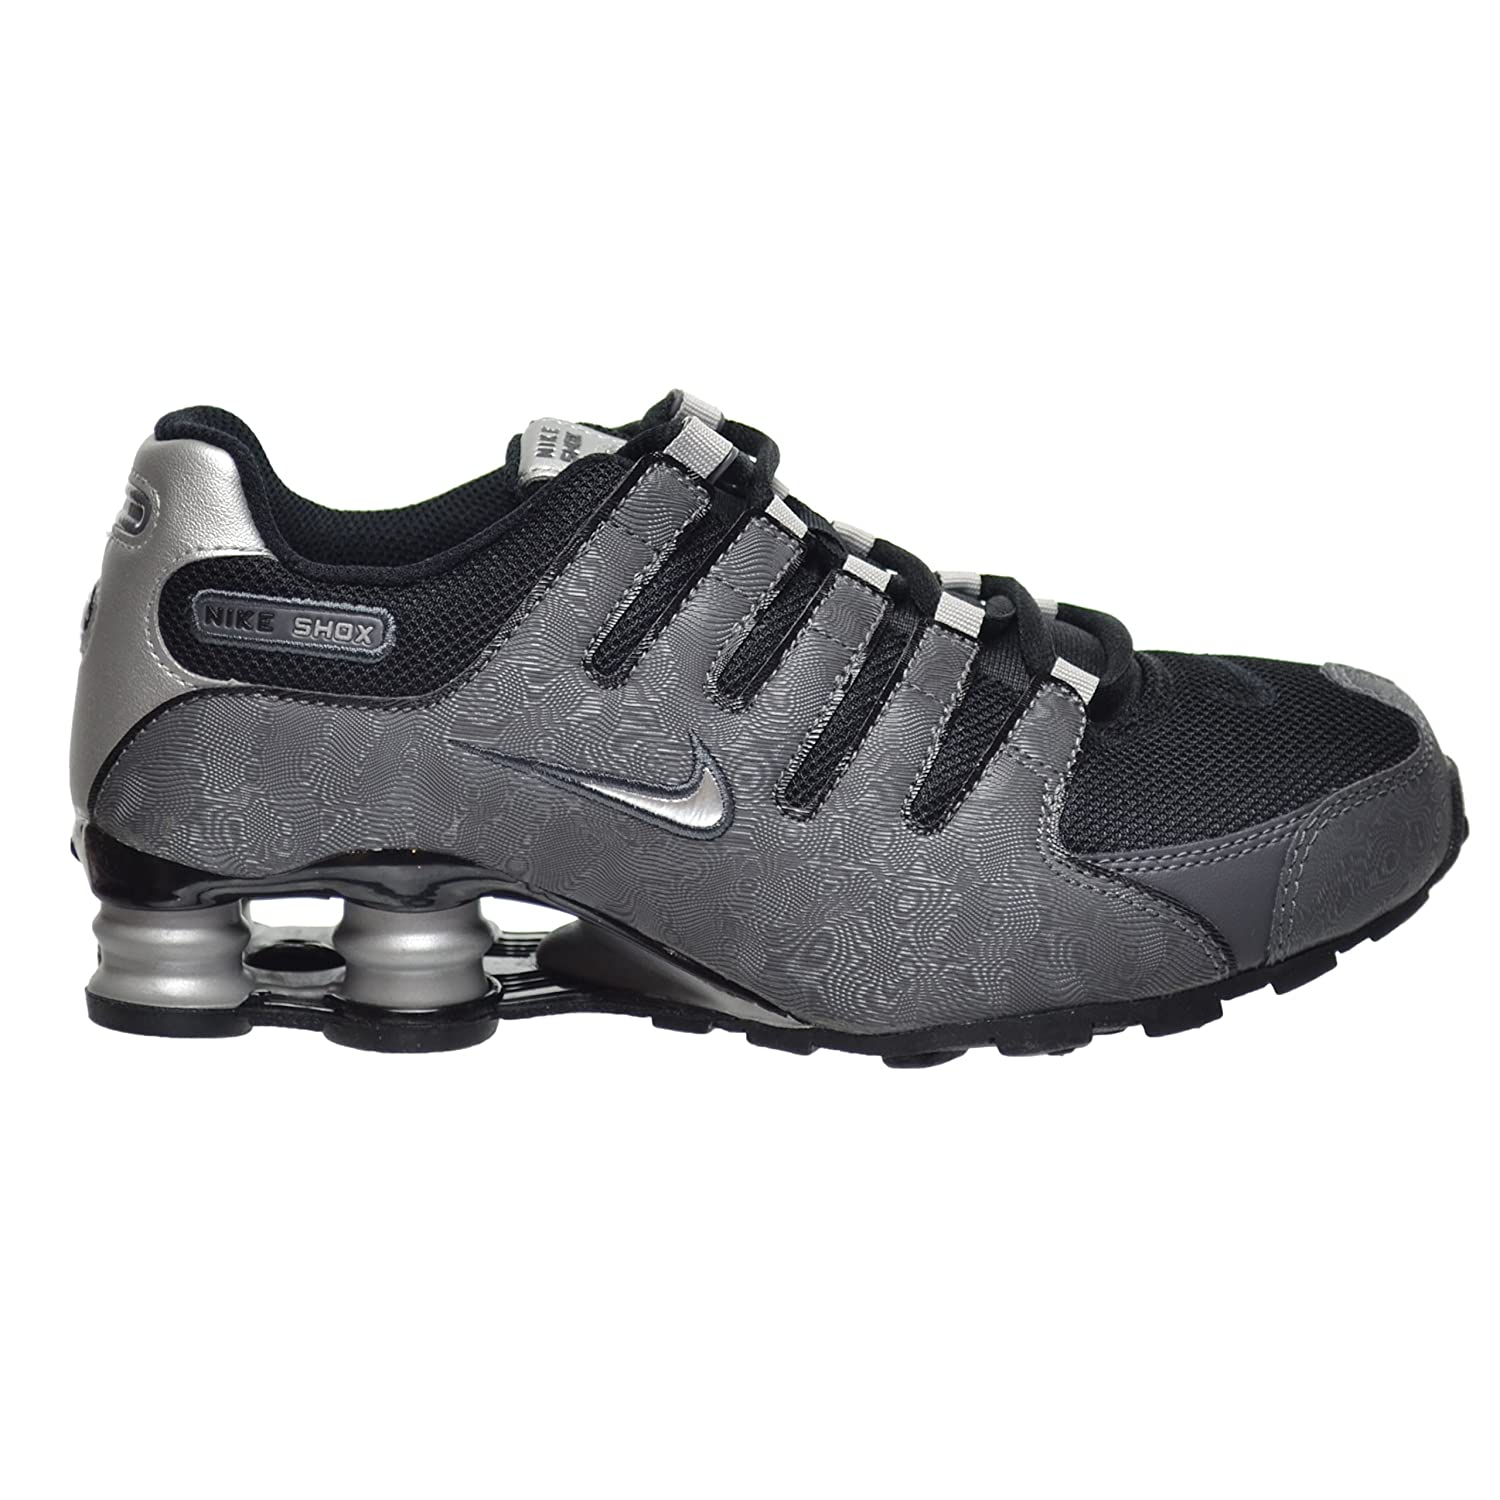 official photos ebde5 a4f8c Nike Shox NZ SI Plus(GS) Big Kid s Shoes Black Metallic Silver-Dark Grey  317929-029 (4 M US)  Amazon.ca  Shoes   Handbags